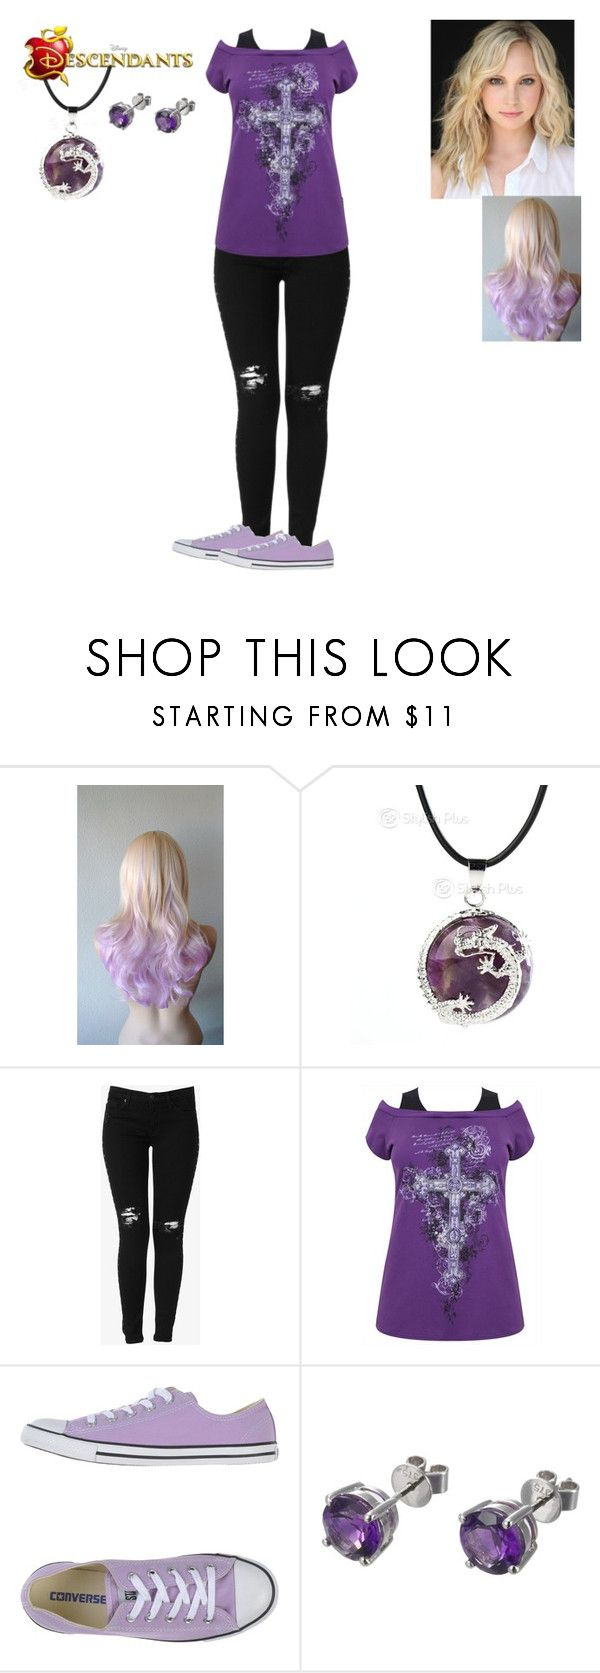 """""""Emma Snow-Cent - Daughter of Maleficent (Adopted by Elsa)"""" by maxinehearts ❤ liked on Polyvore featuring Hudson Jeans, Converse, EWA, OC and Decsendants"""